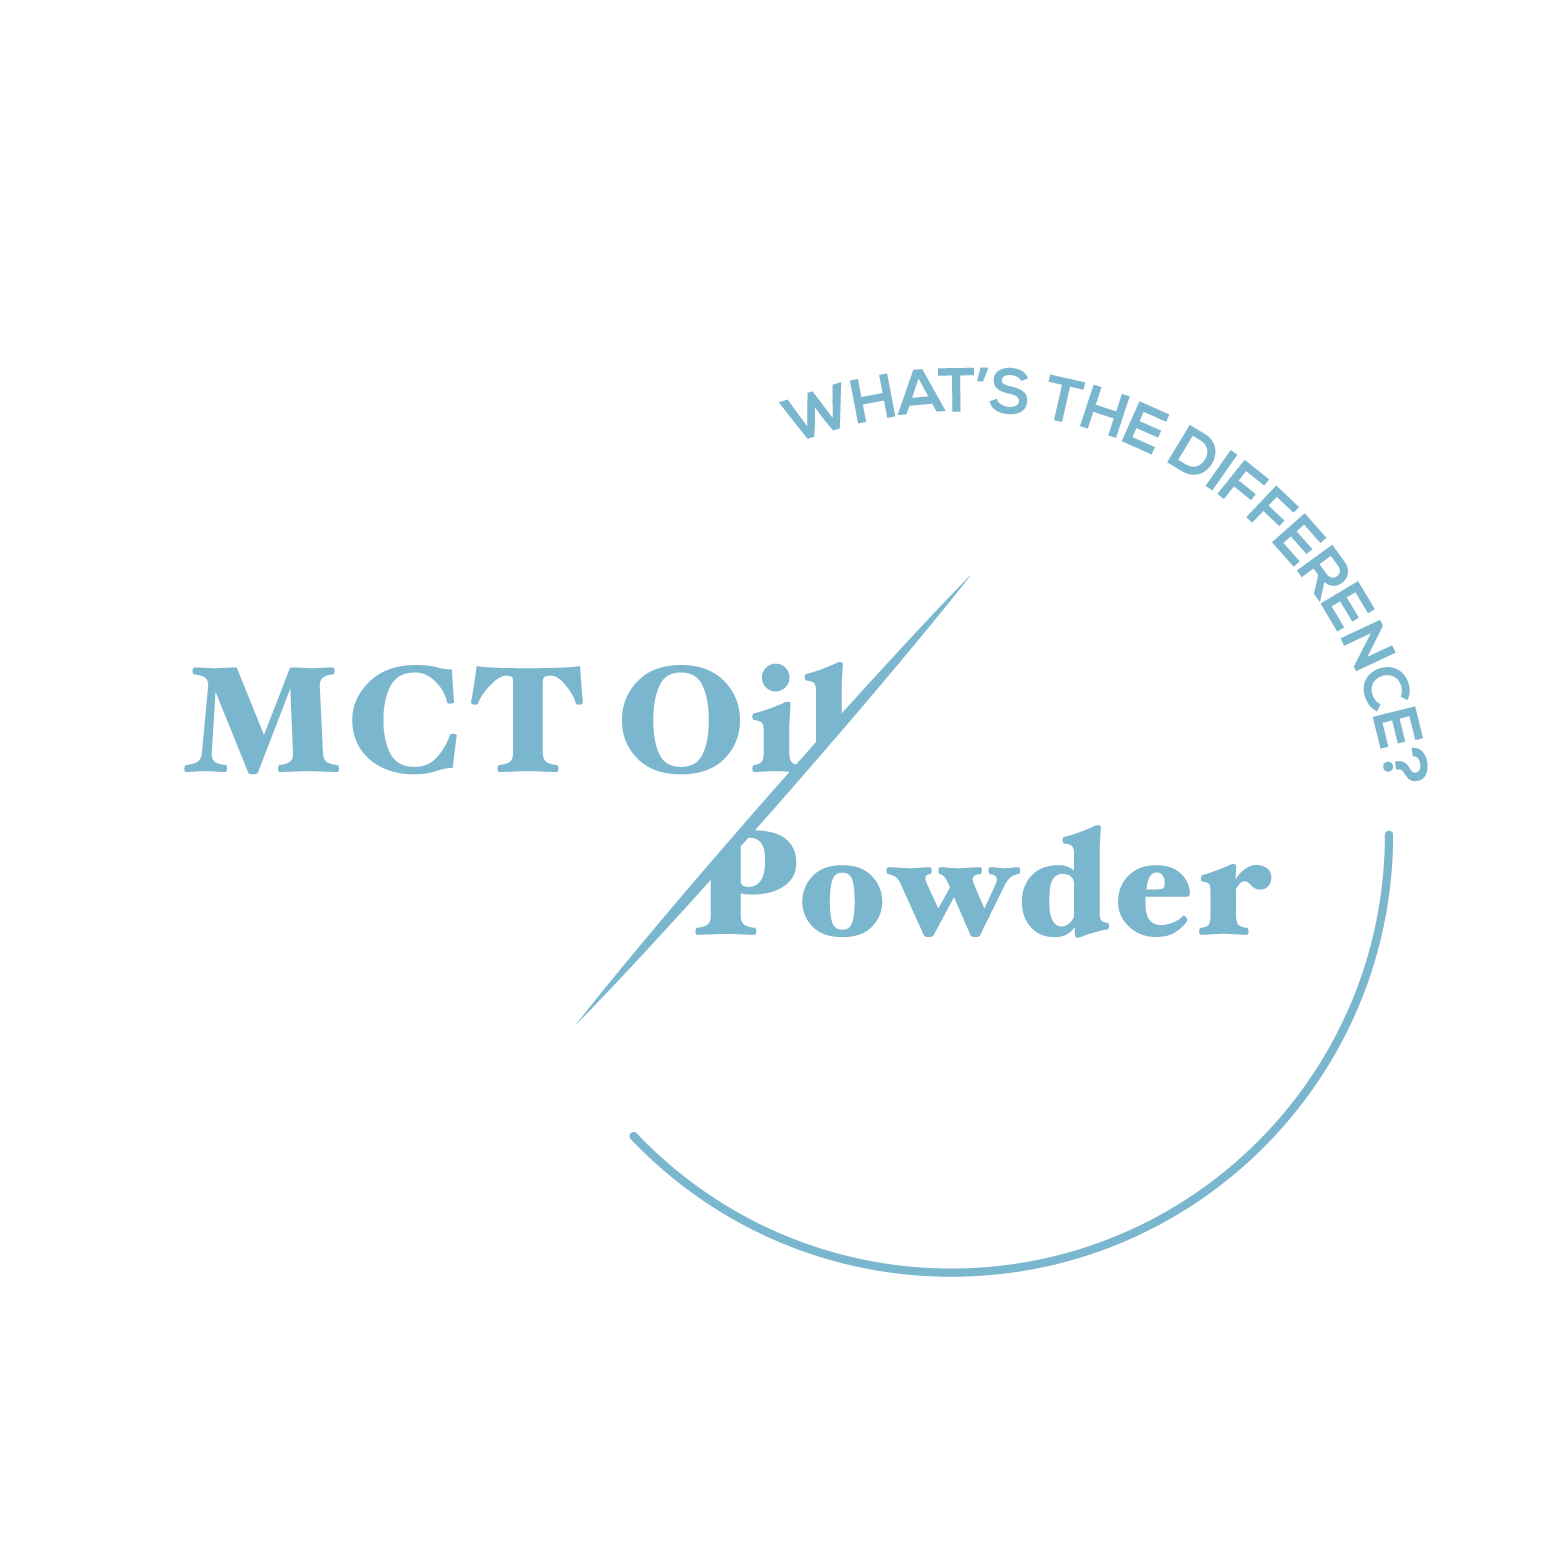 MCT Oil vs. MCT Powder: What's the Difference?